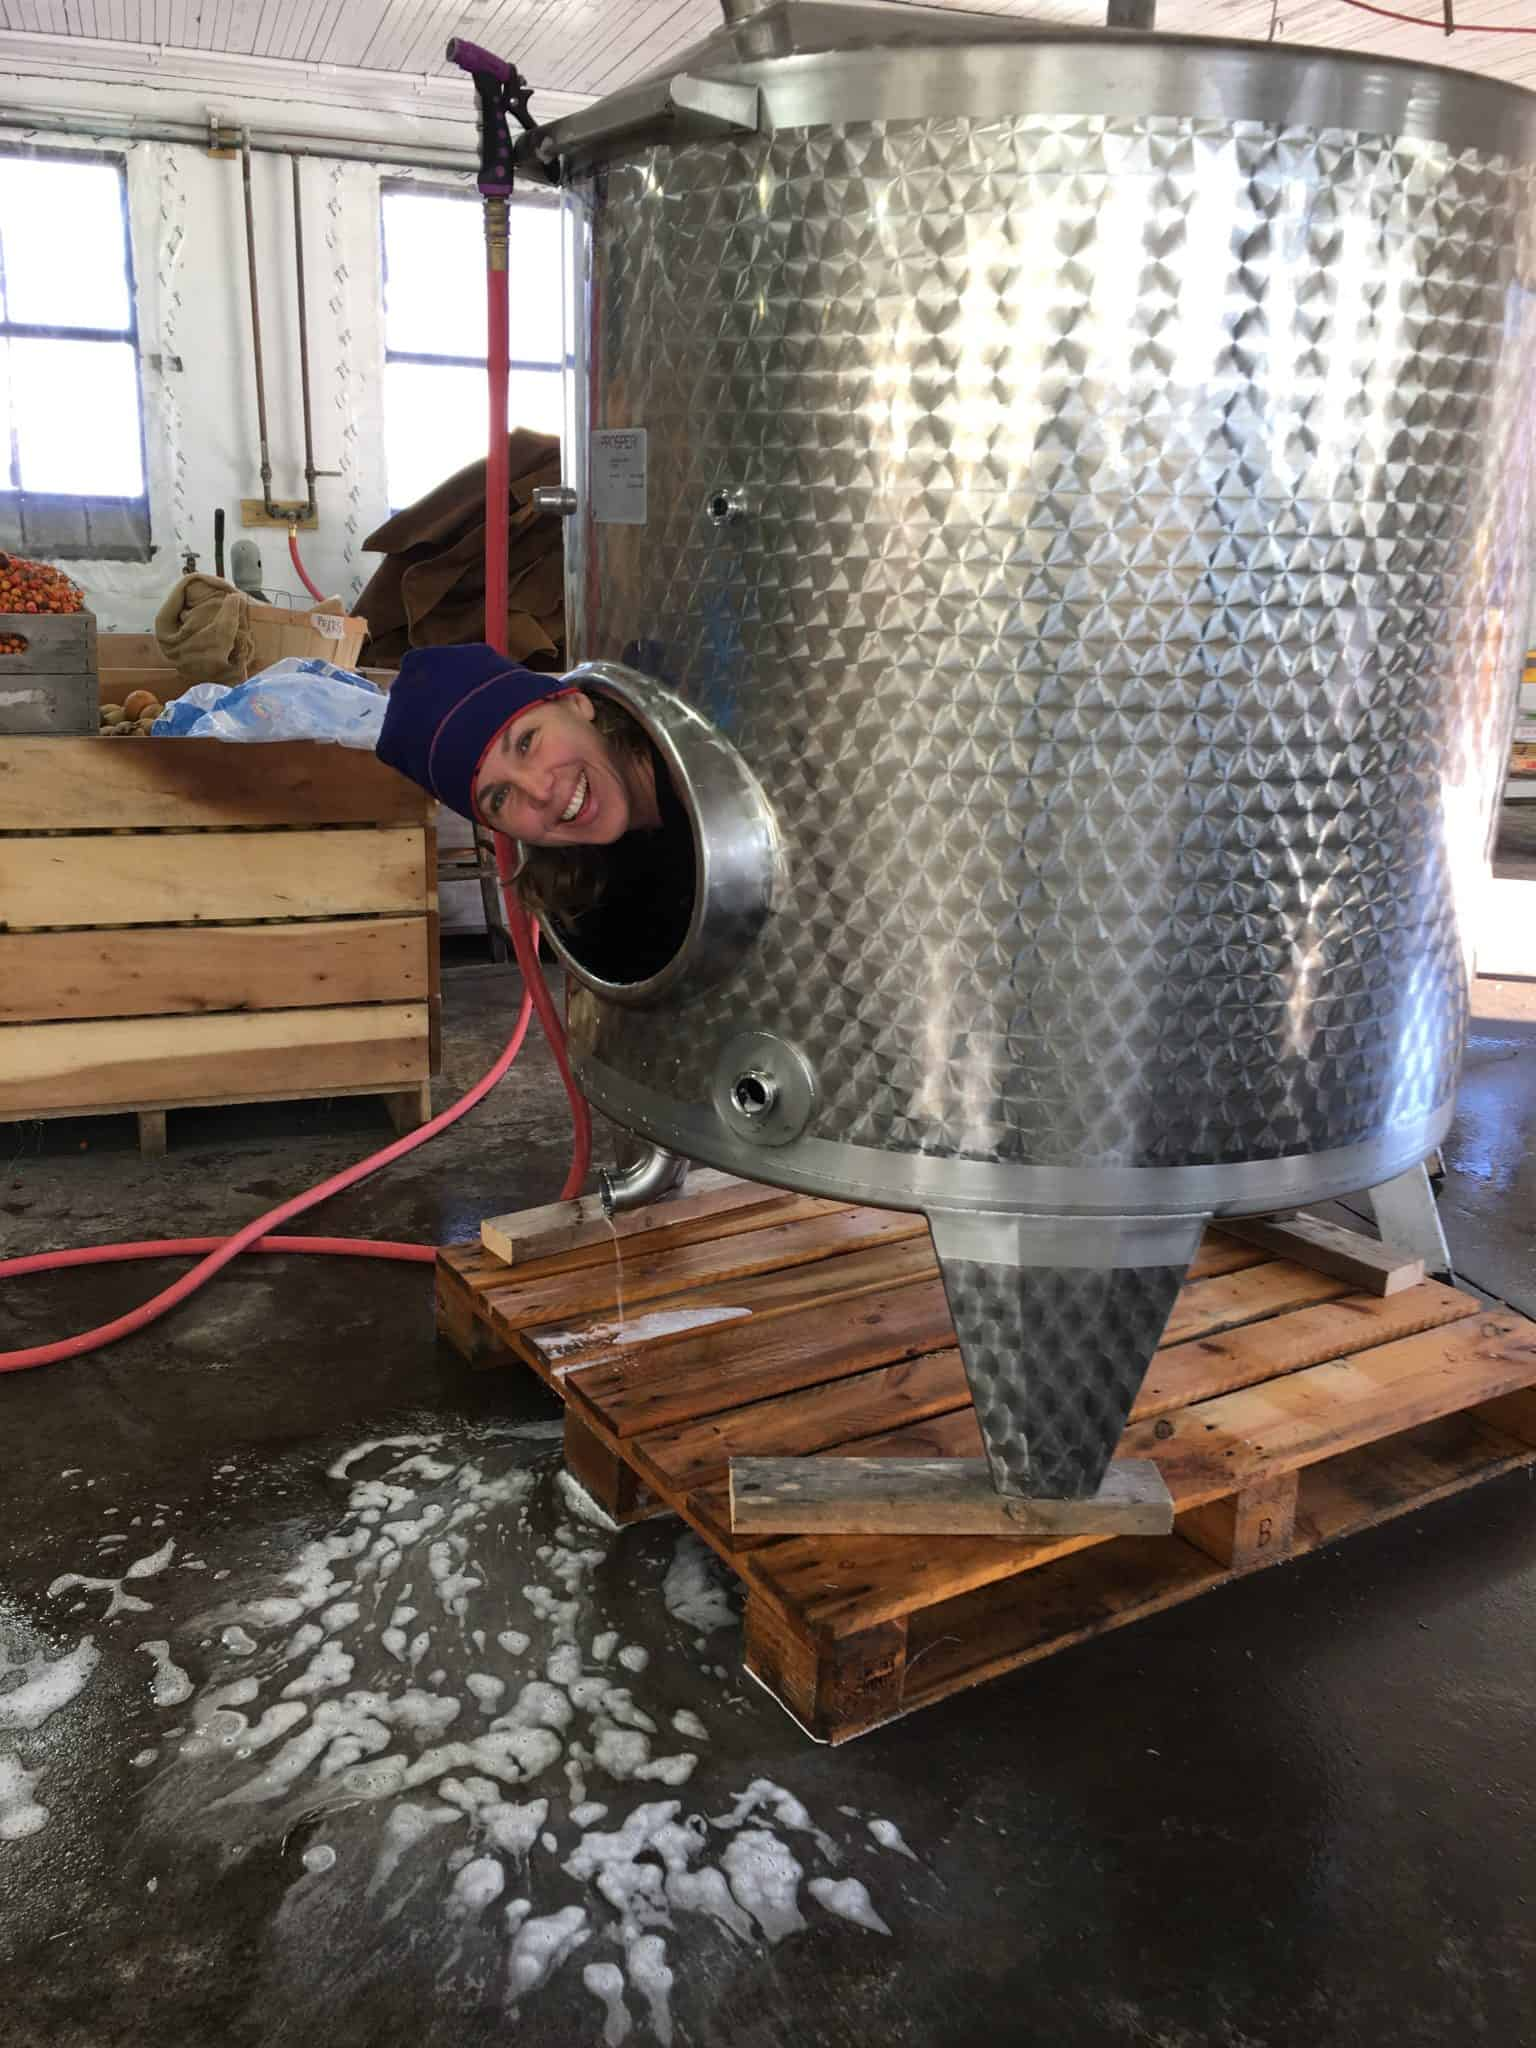 Washing tanks in the cidery.